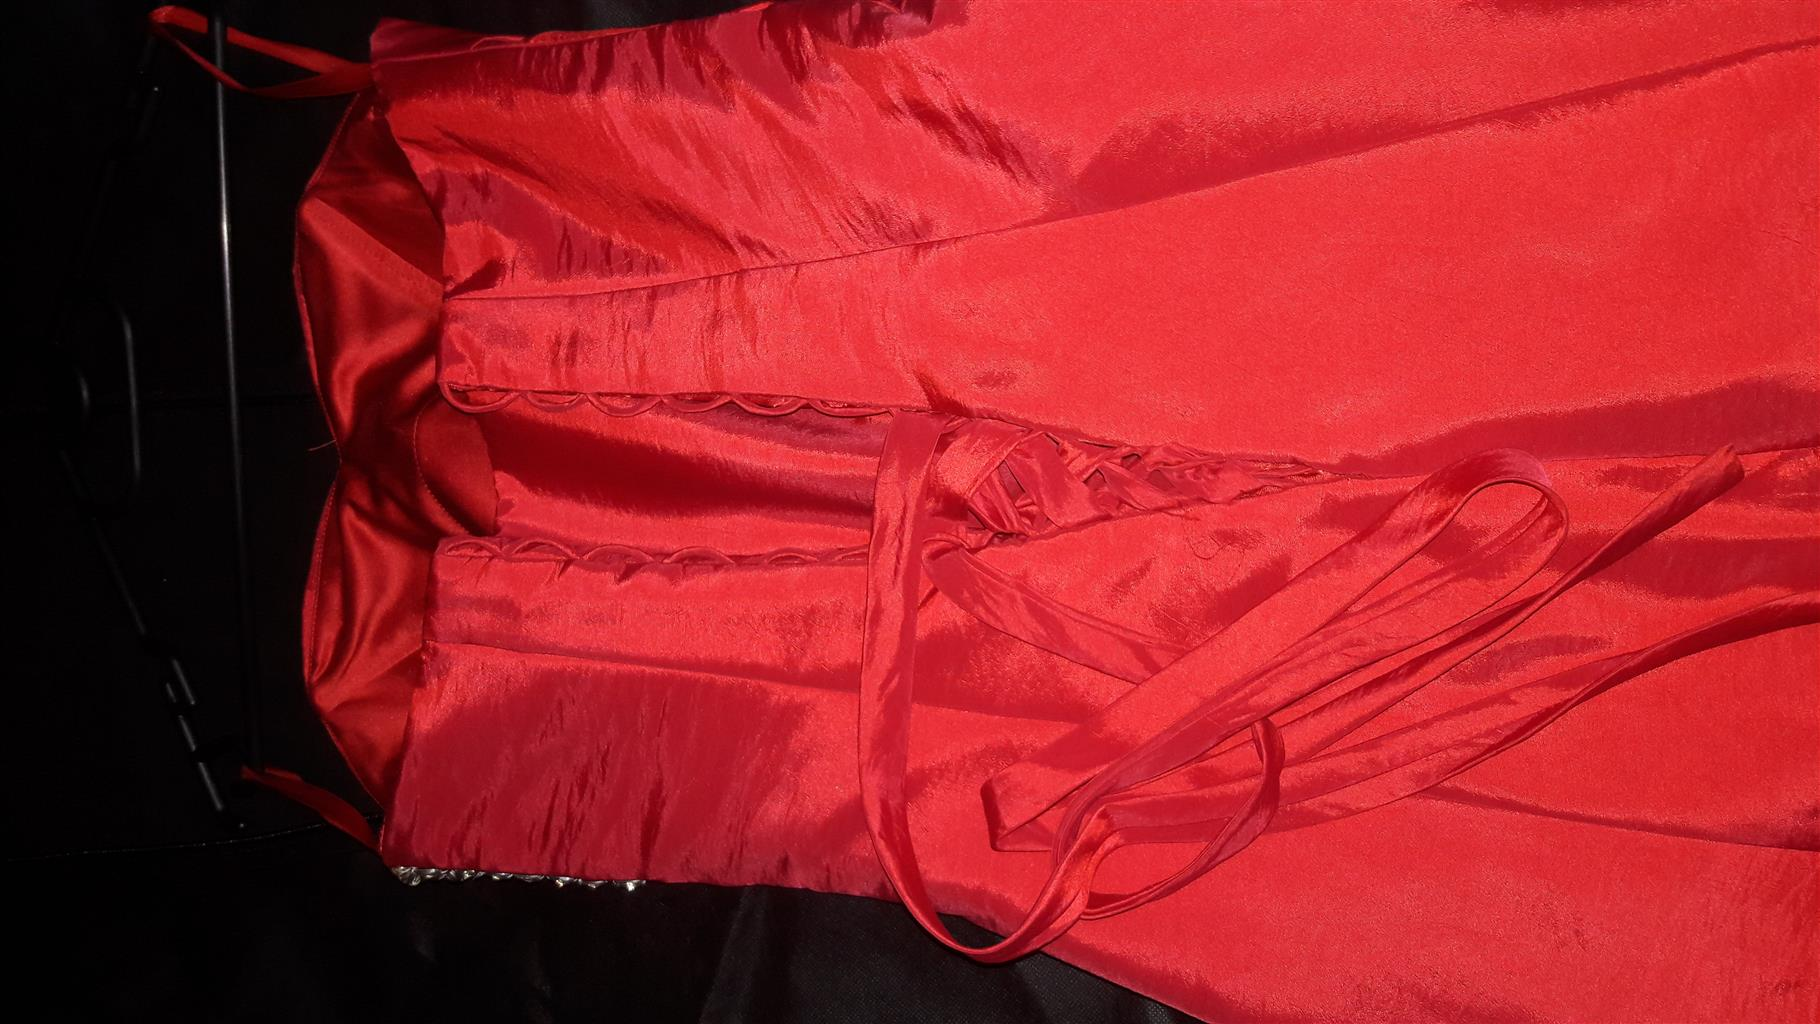 Red matric dress/ red dress/ evening wear/ dress